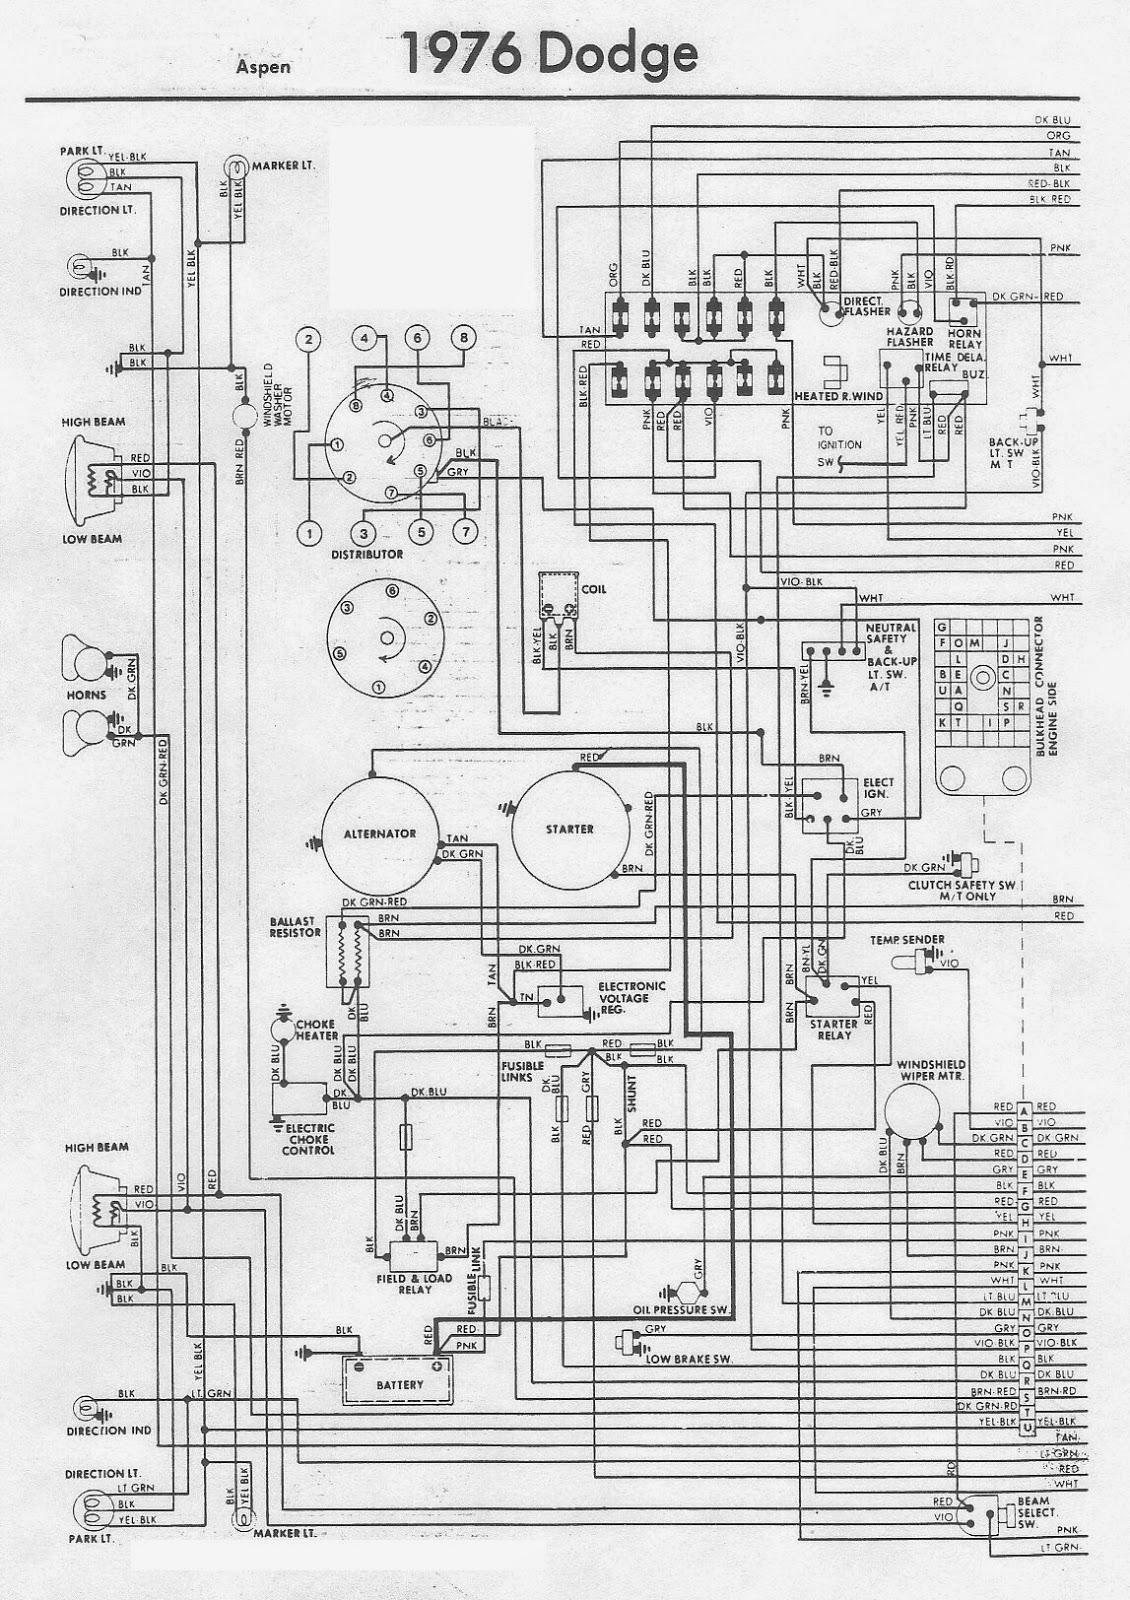 The%2B1976%2BDodge%2BAspen%2BWiring%2BDiagrams%2Ba dodge wiring diagrams 1970 dodge challenger wiring diagram \u2022 free wiring diagram for 1978 dodge truck at gsmx.co